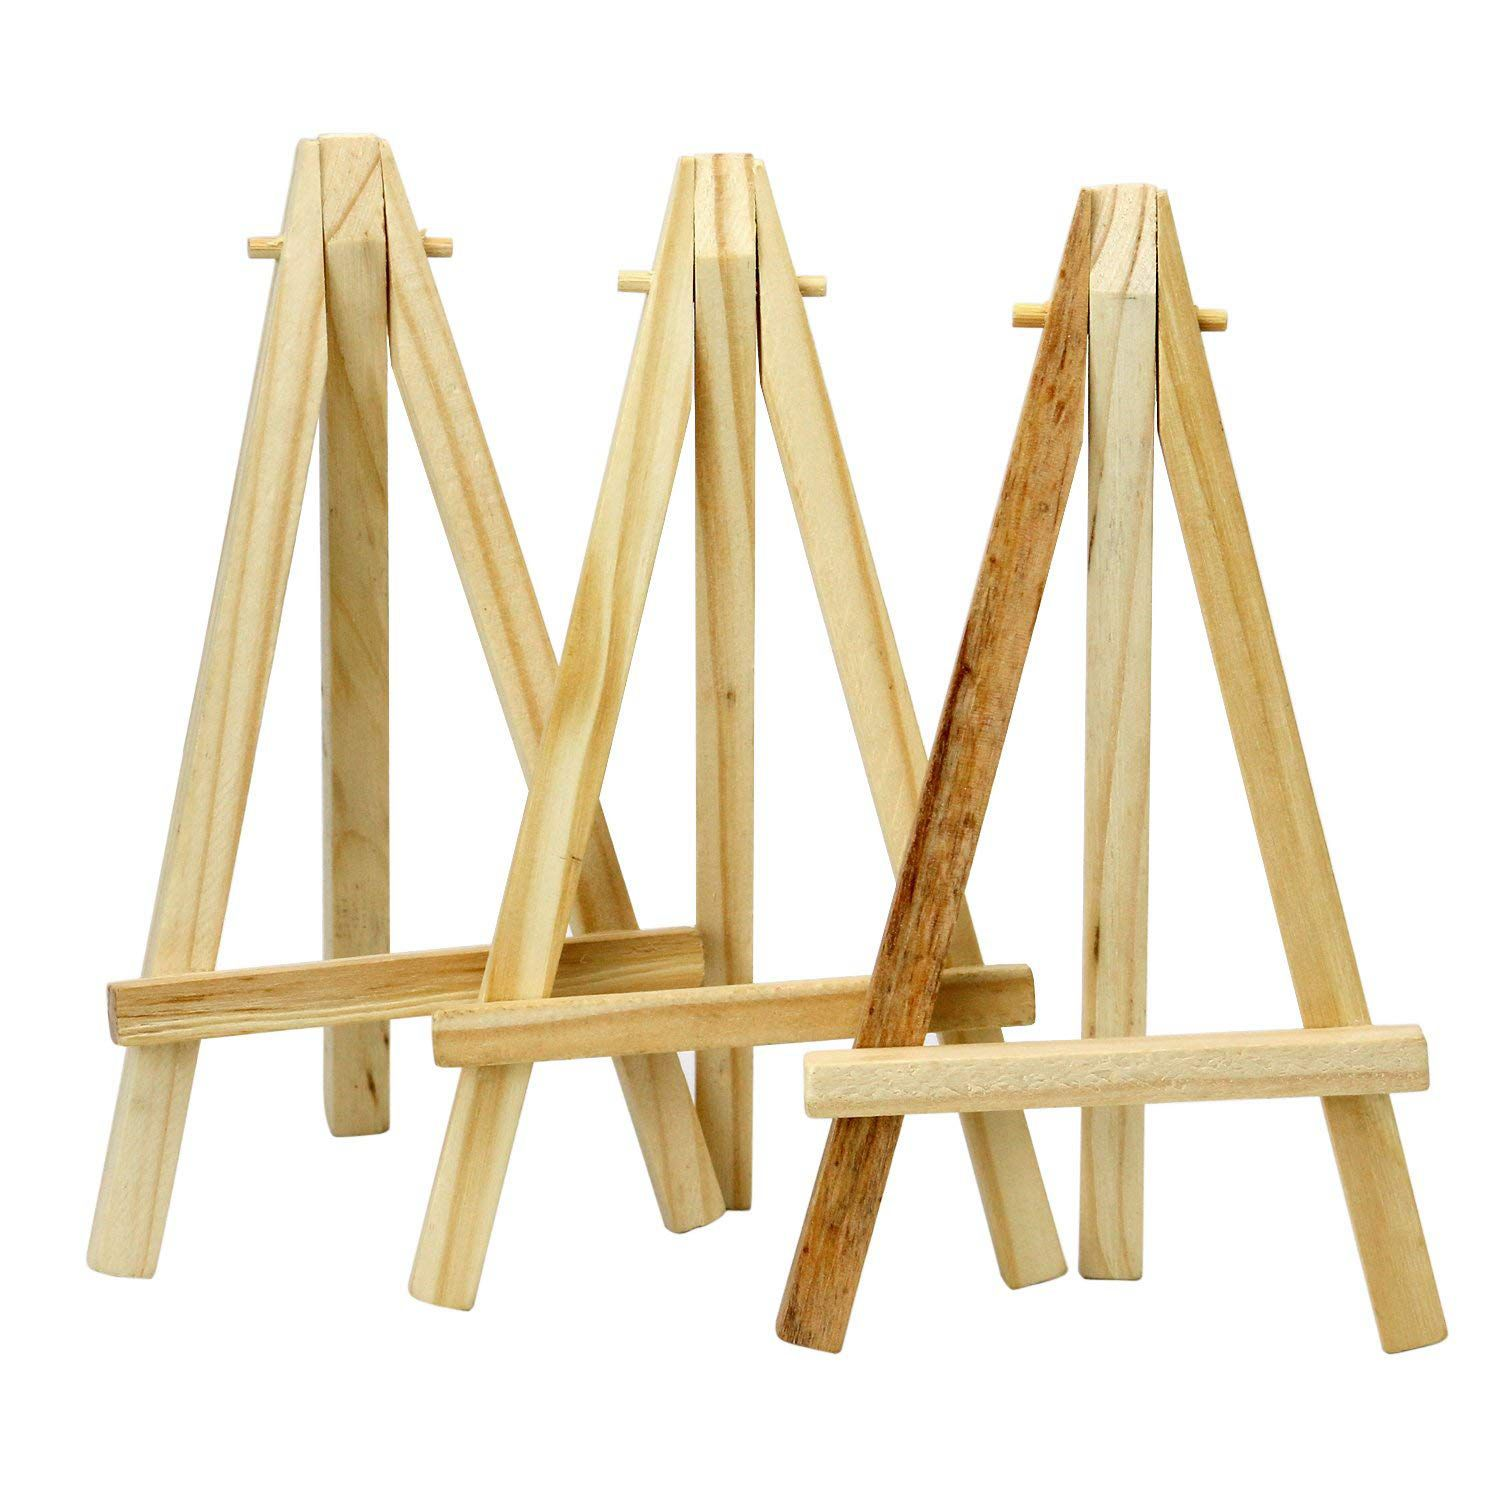 Mini 6 Inch Tall Wooden Easels Artistic Projects Photo Name Menu Holder Table Reservations Festive Xmas Placeholder